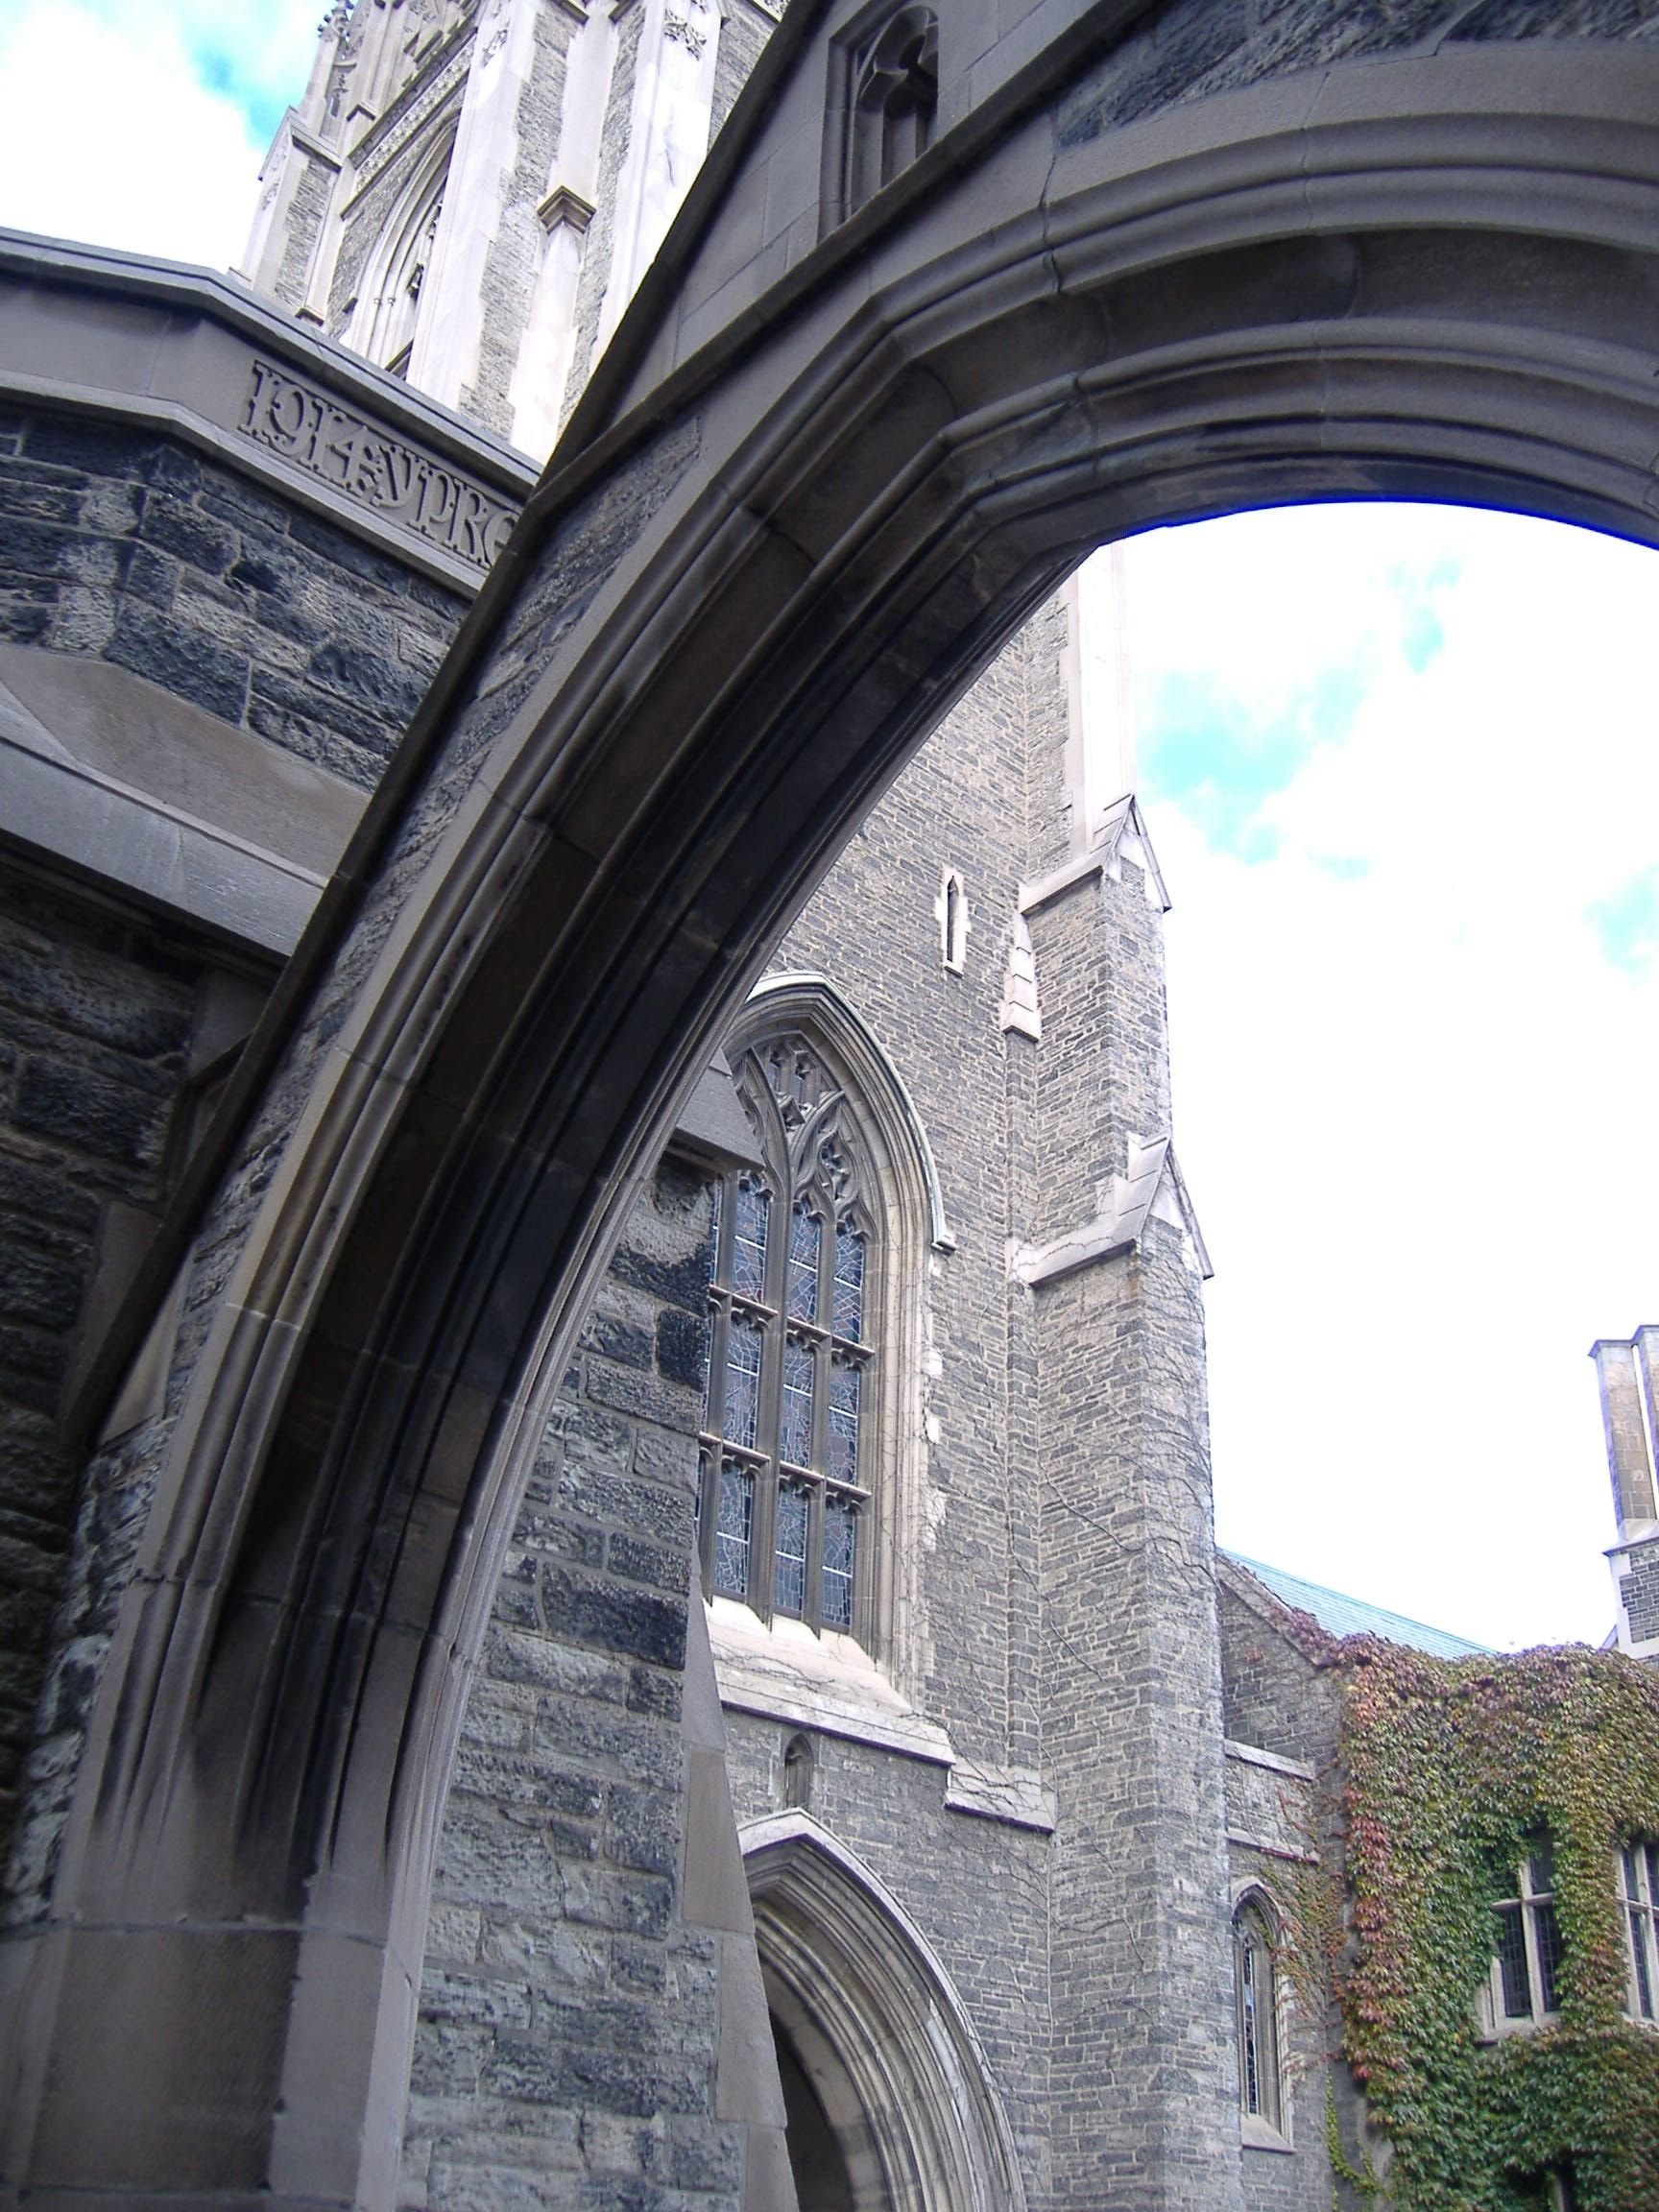 University of Toronto in Ontario, Canada. It was founded